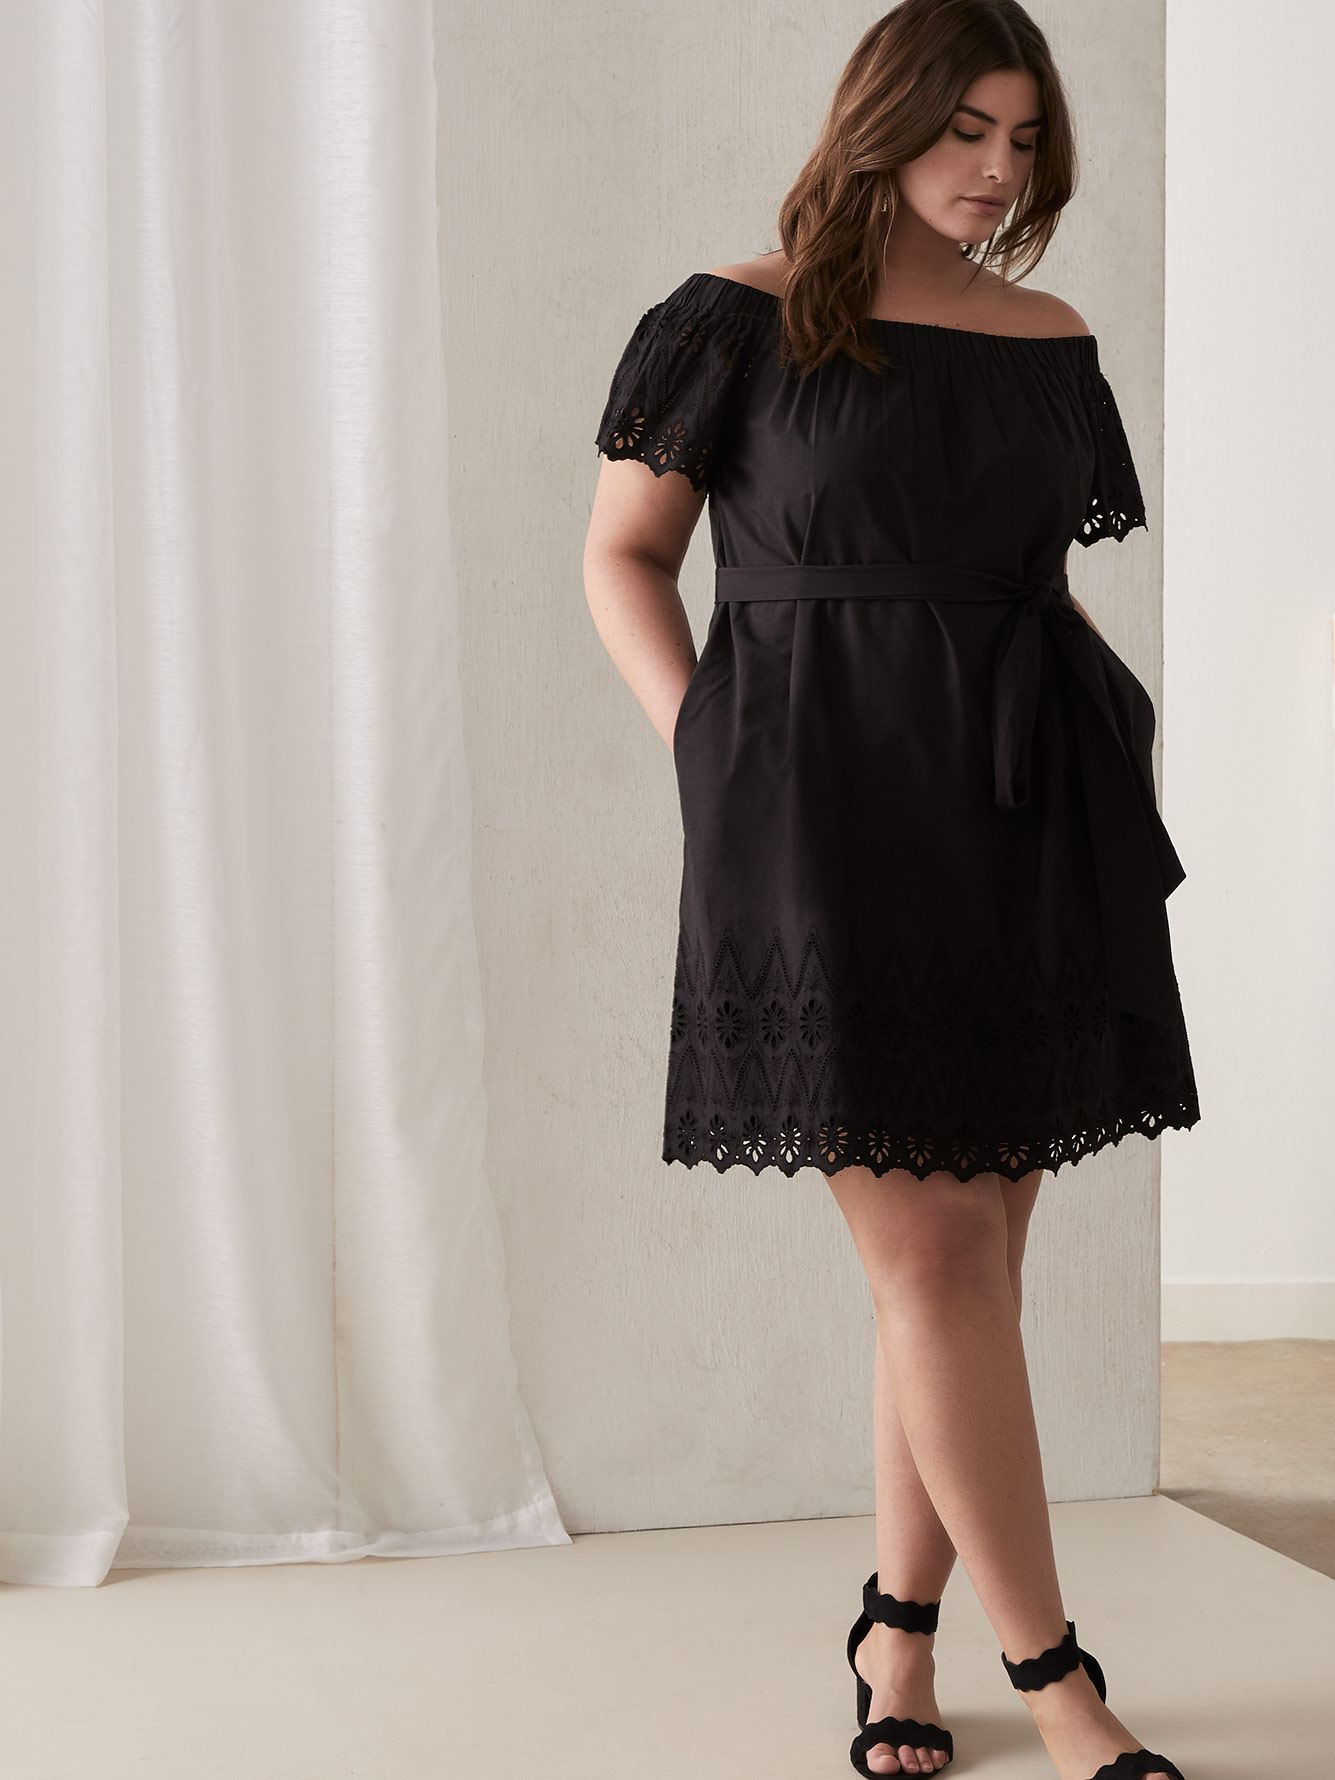 Off-the-Shoulder Ilenia Cotton Dress with Lace - RACHEL Rachel Roy